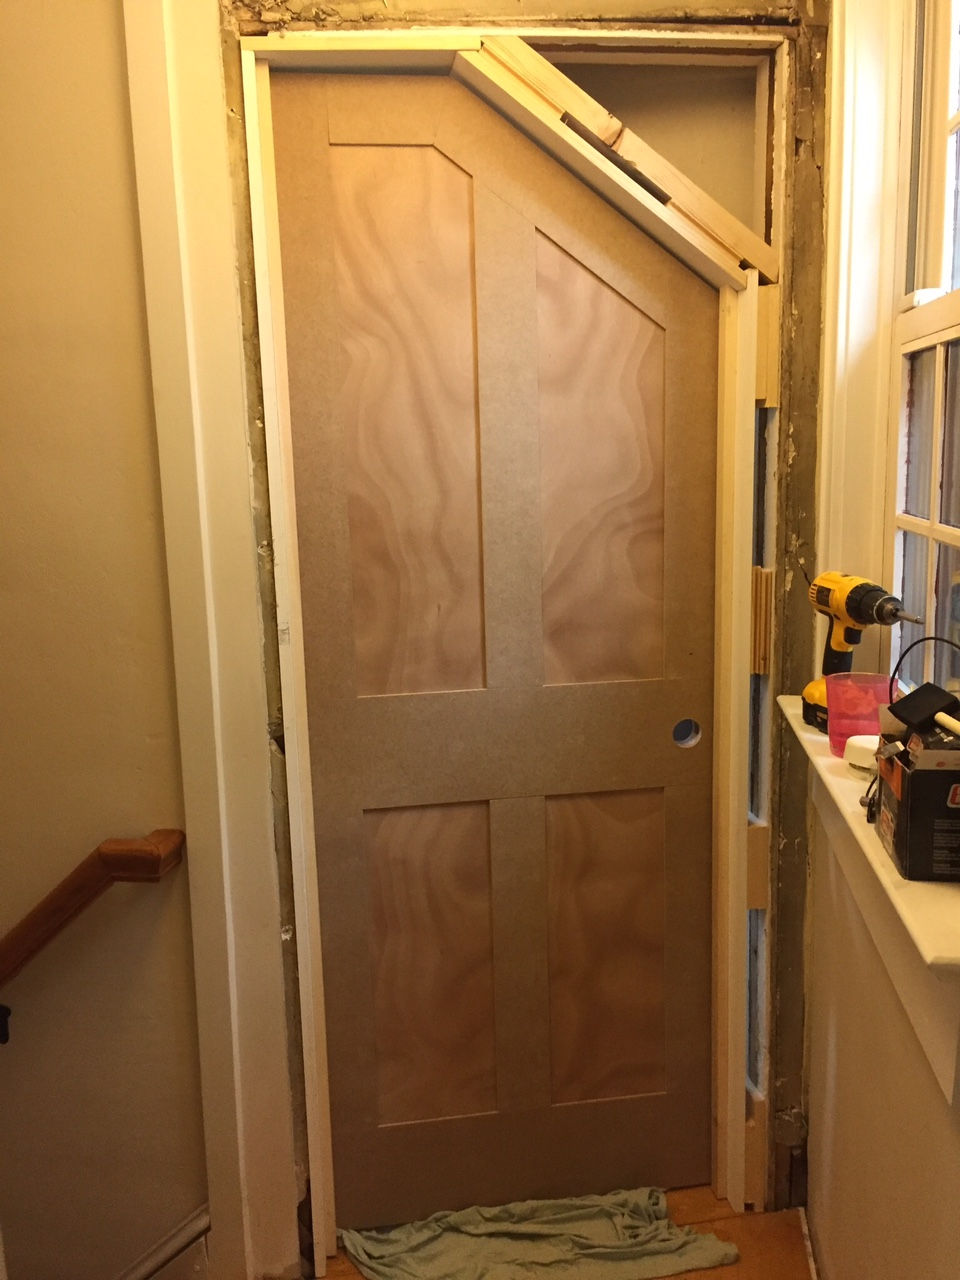 Le Meilleur Diy How To Build An Angled Door One Room Challenge Ce Mois Ci